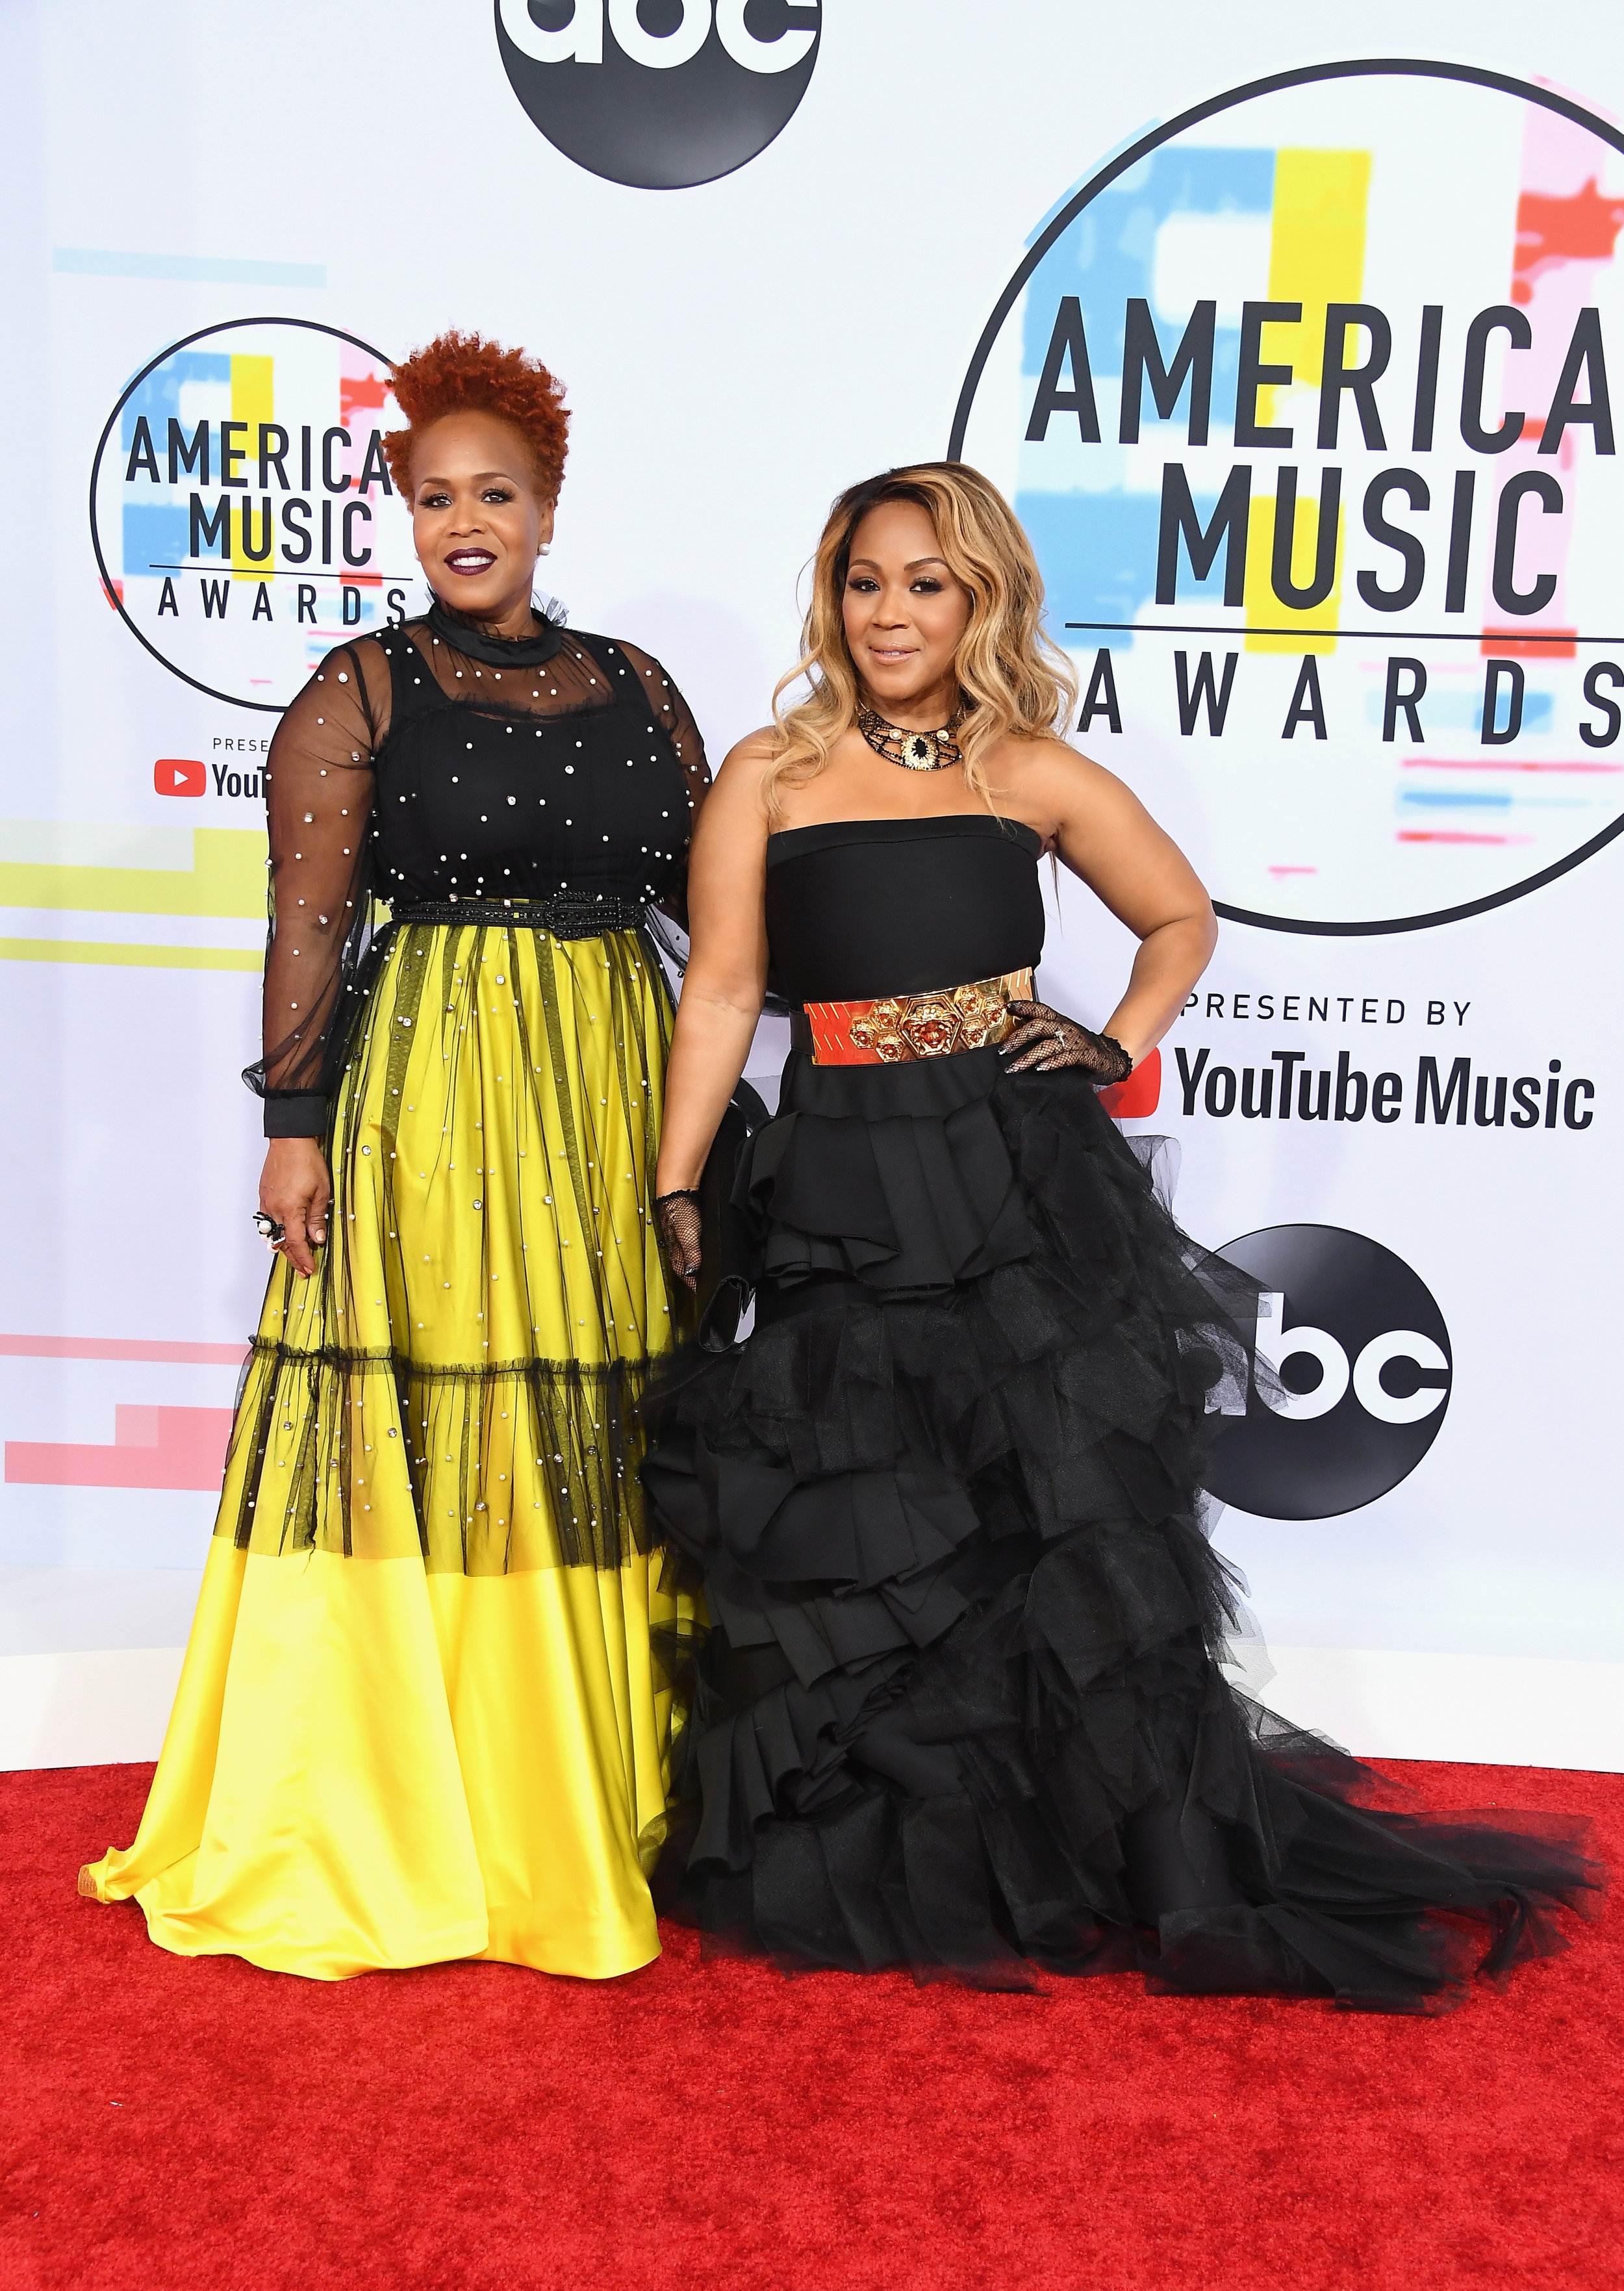 AMERICAN MUSIC AWARDS 2018 RED CARPET MARY MARY.jpg